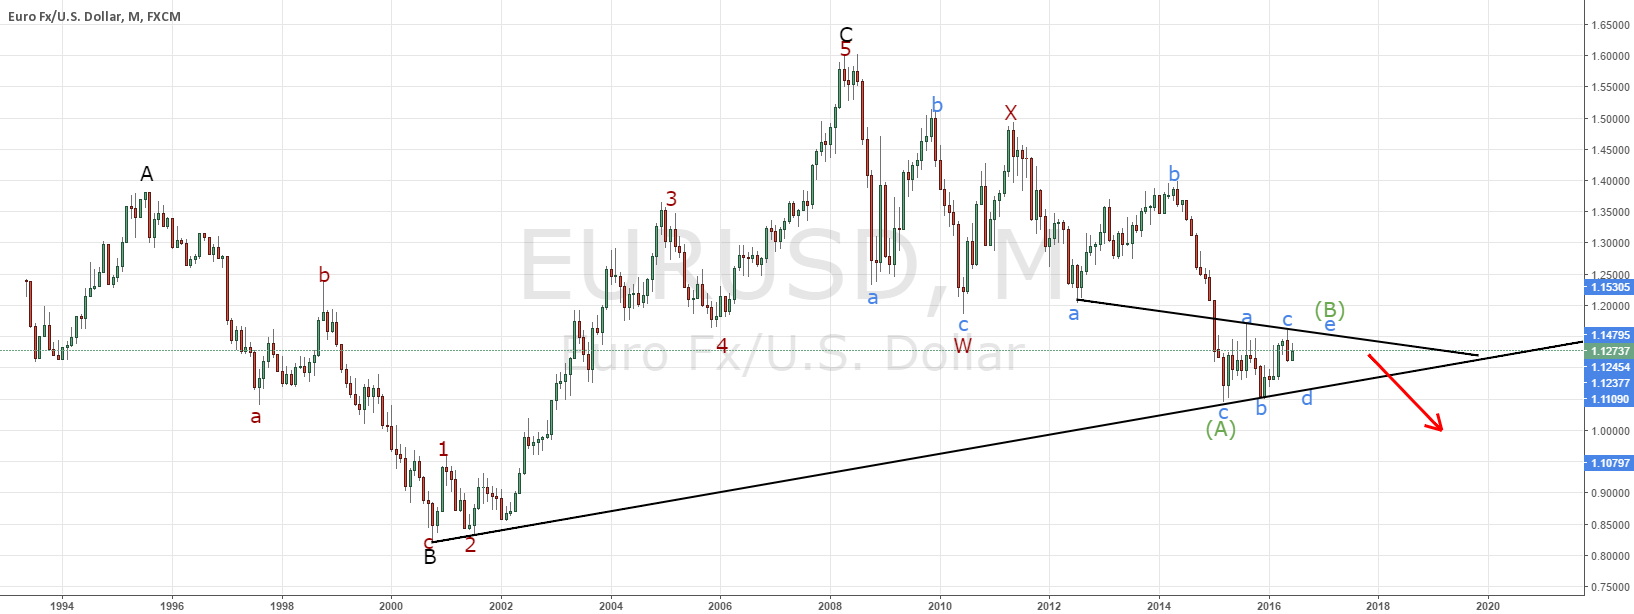 EURUSD bigger picture